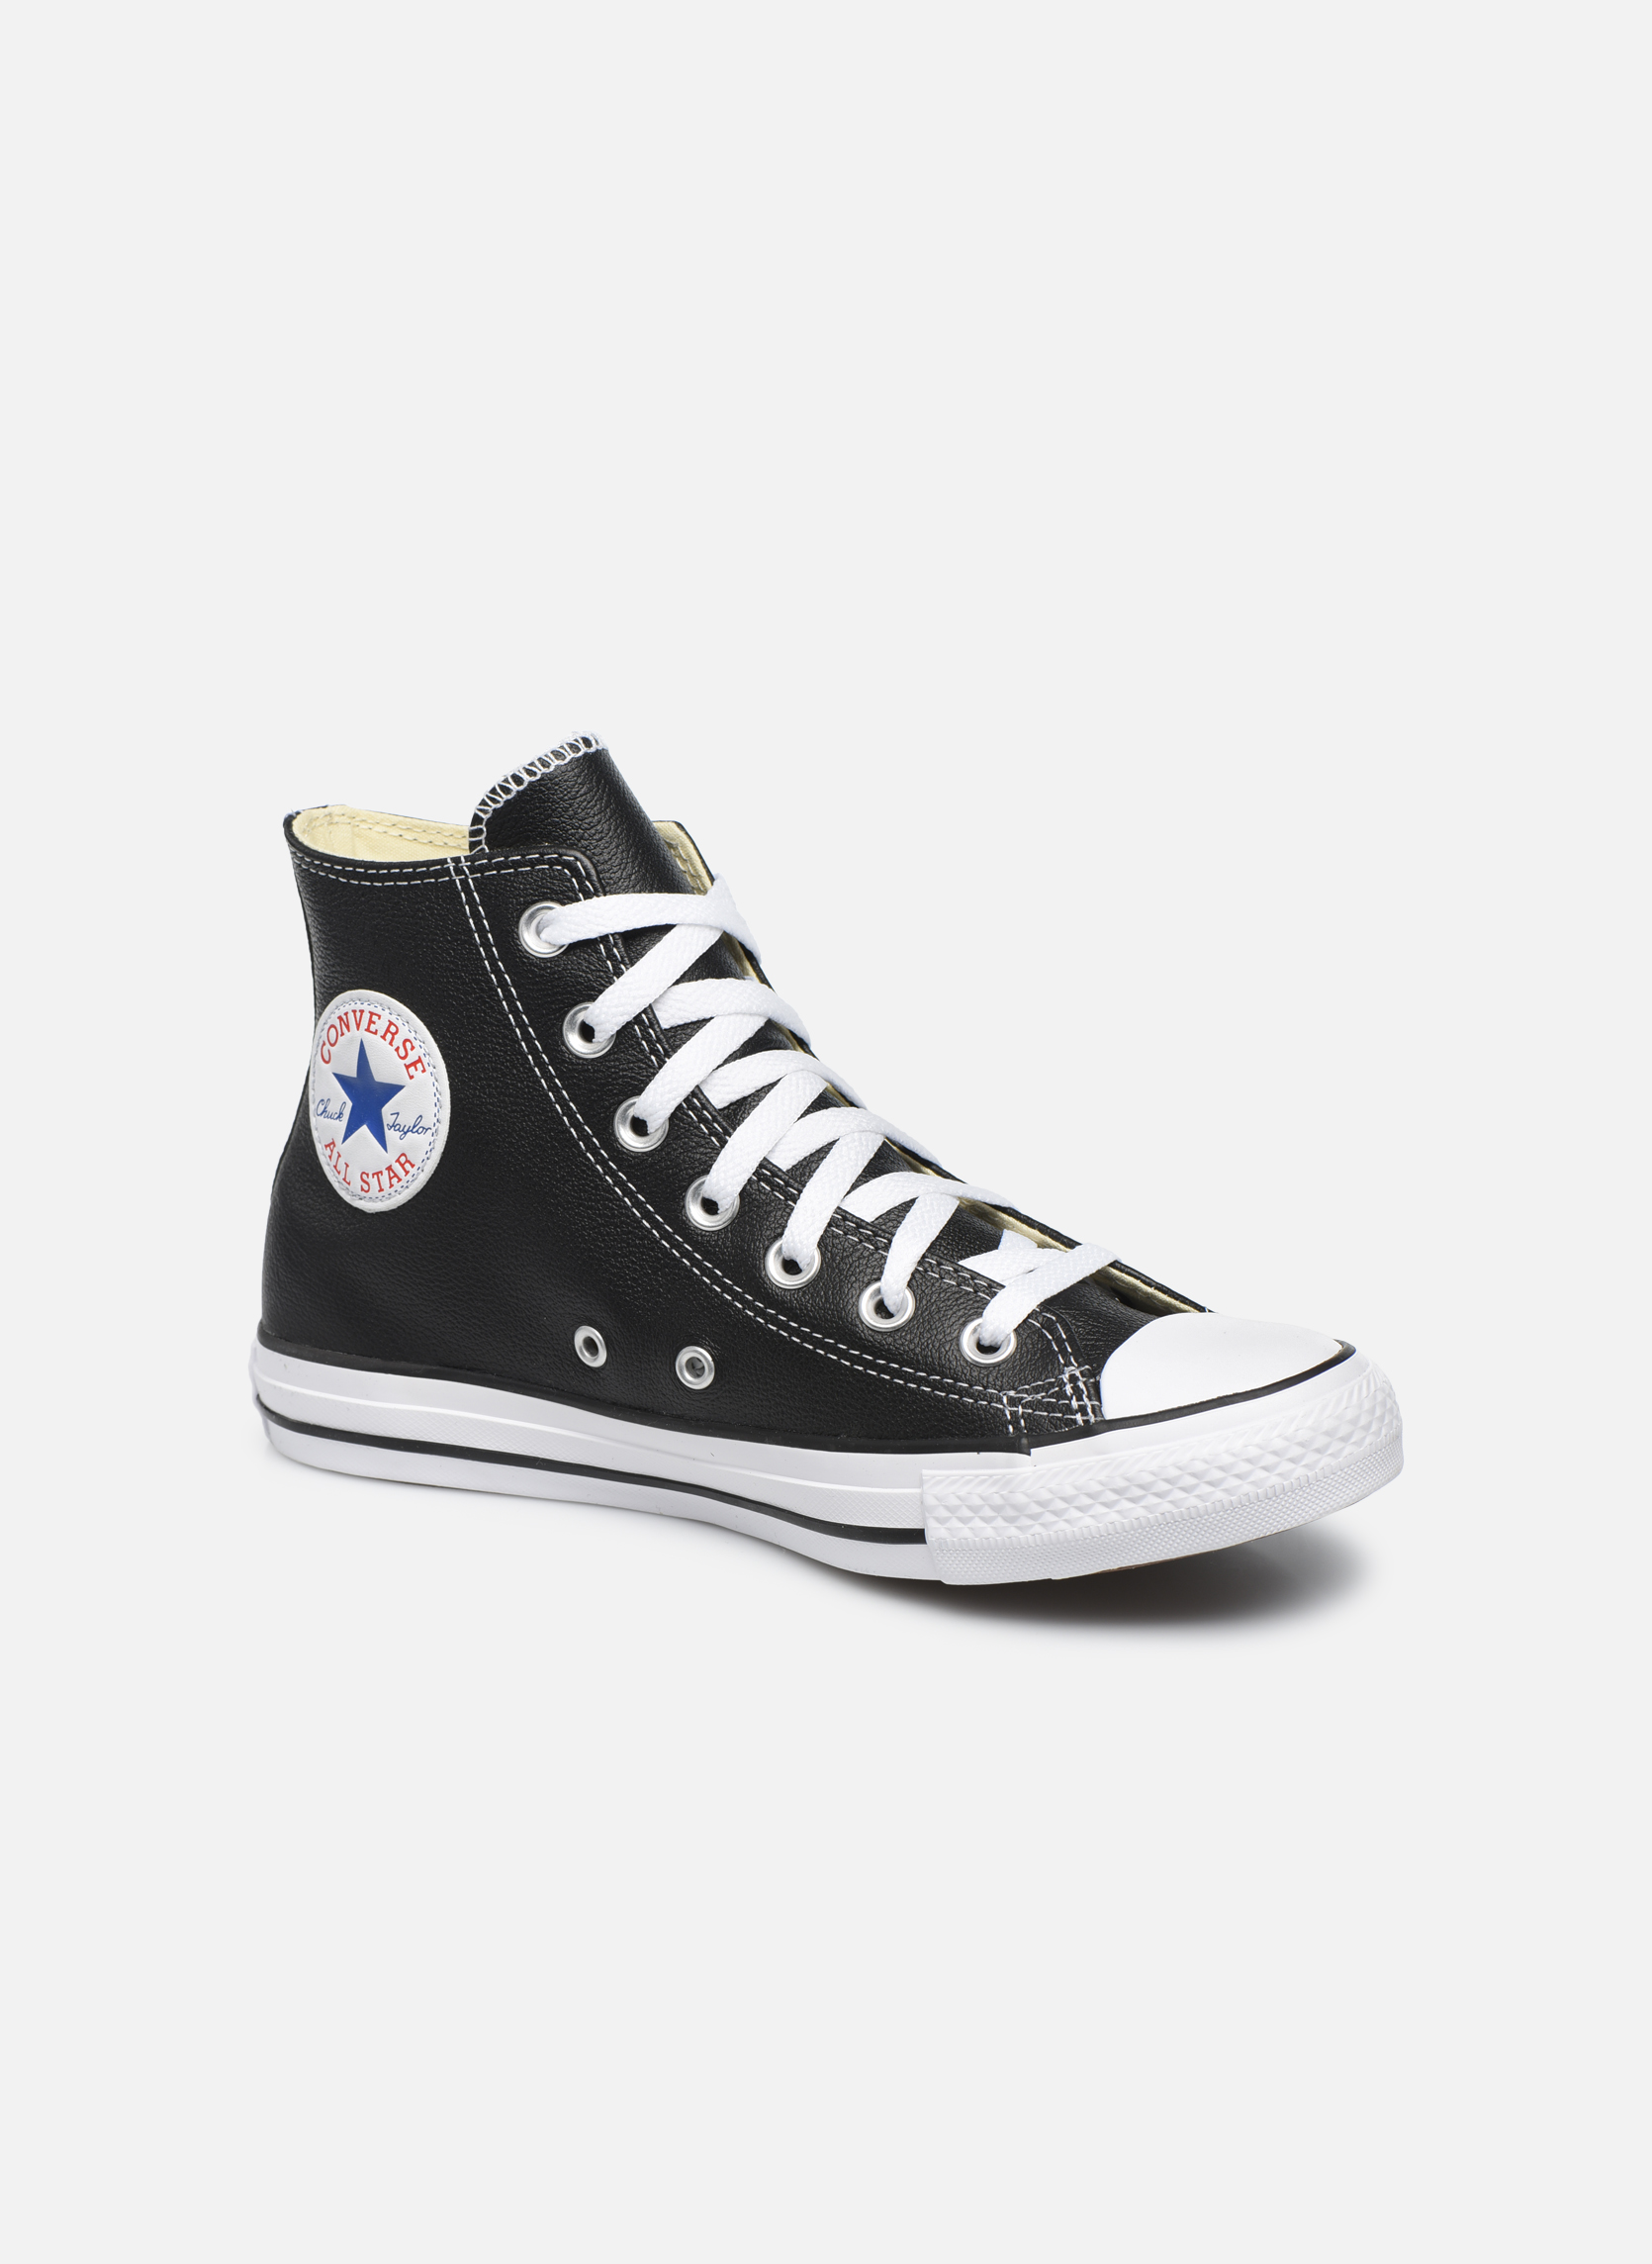 da99f71a26f Noir All Converse Hi Leather Star W Taylor Chuck pSw0qav - place ...